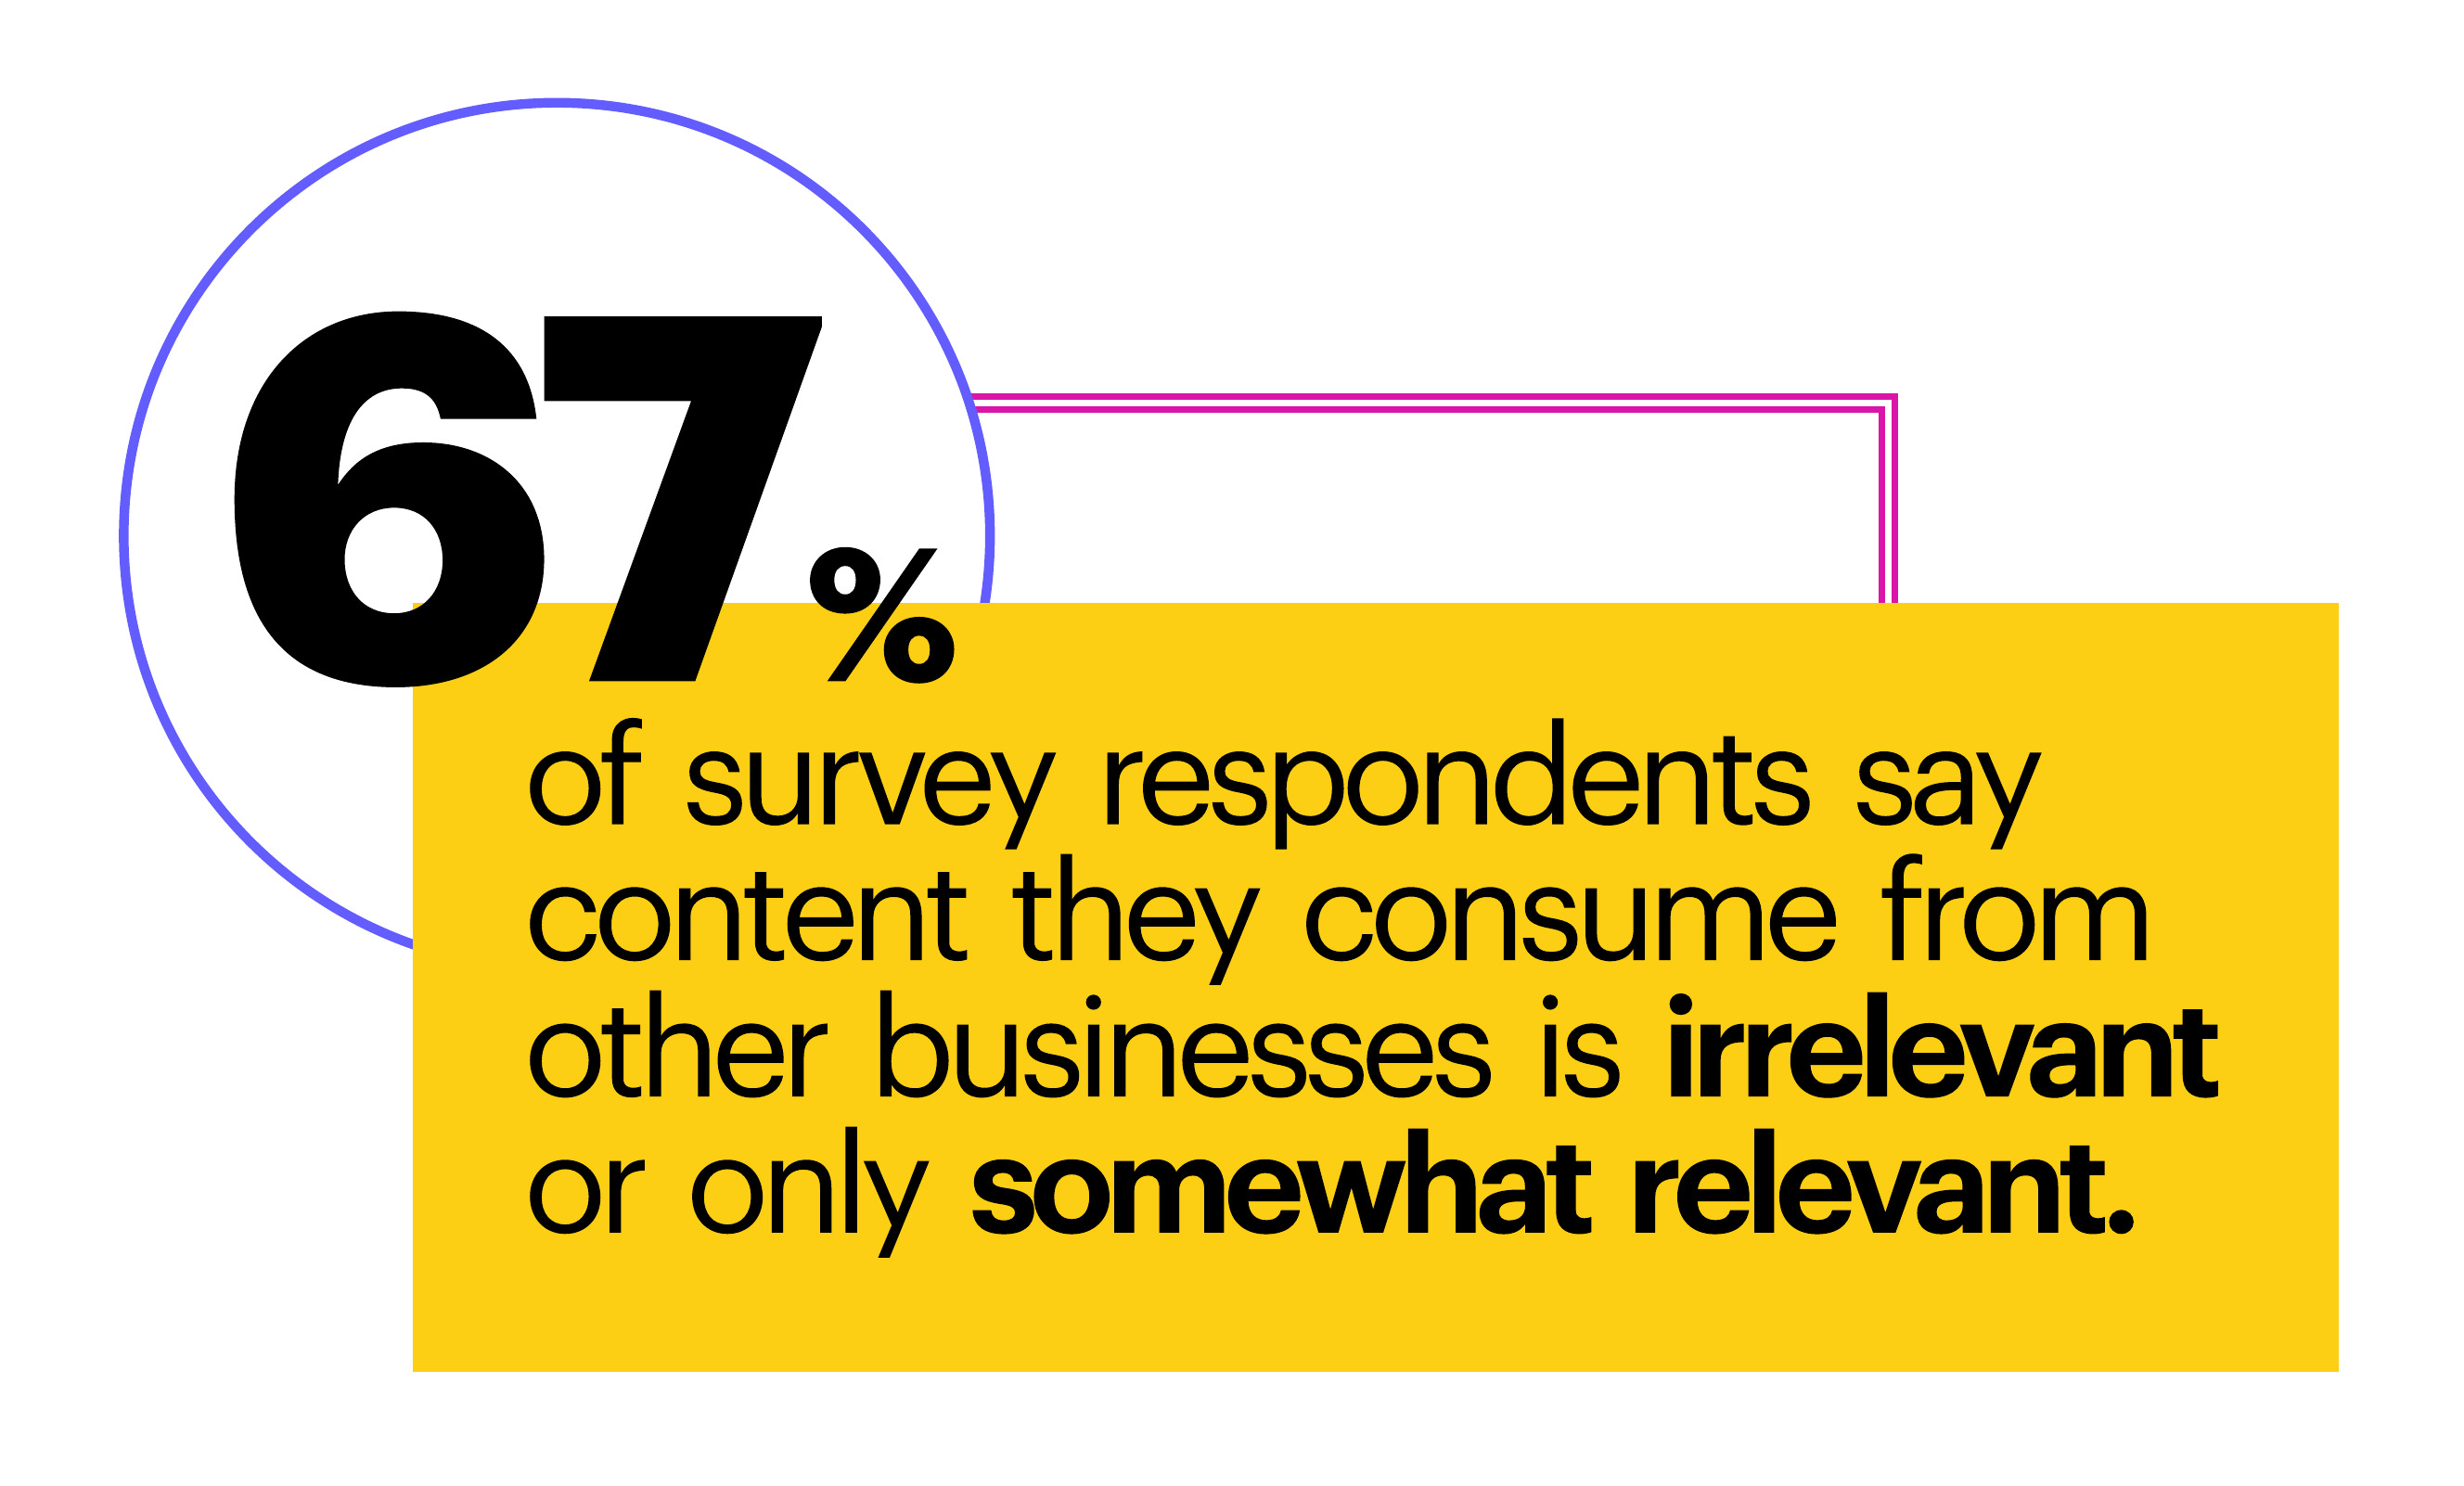 67% of survey respondents say content they consume from other businesses is irrelevant or only somewhat relevant.